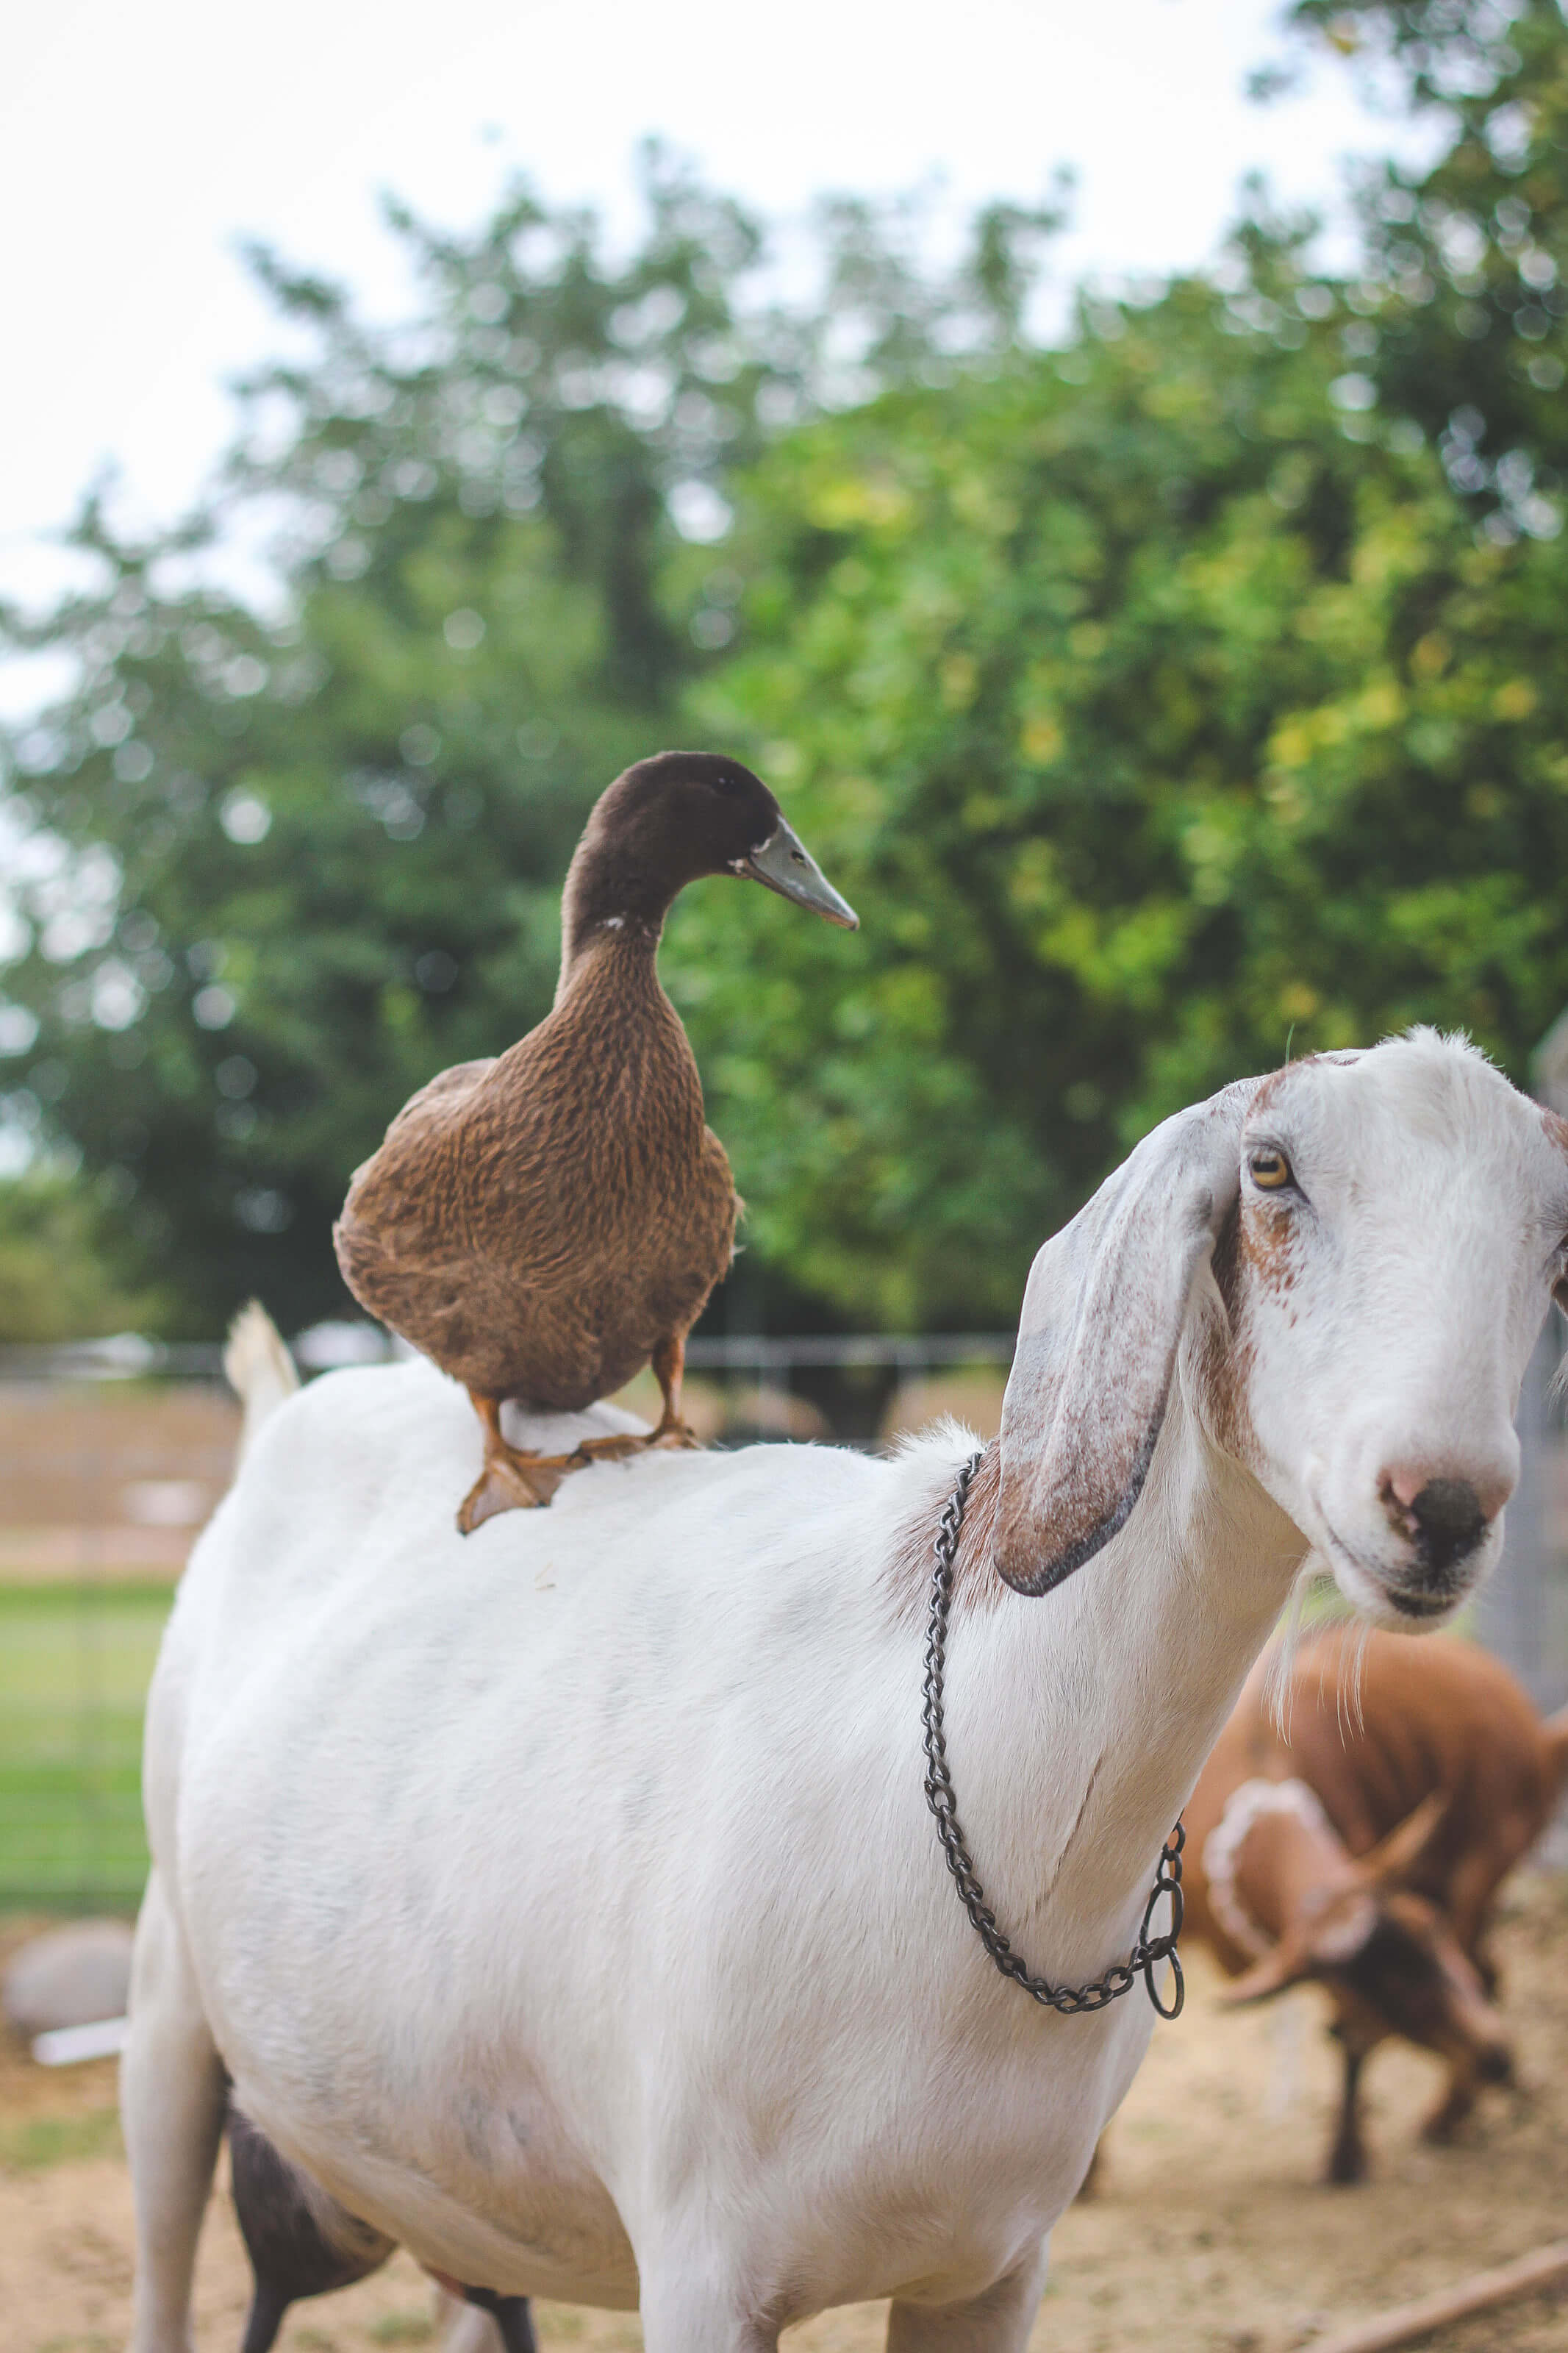 Duck sitting on the back of a Nubian goat.